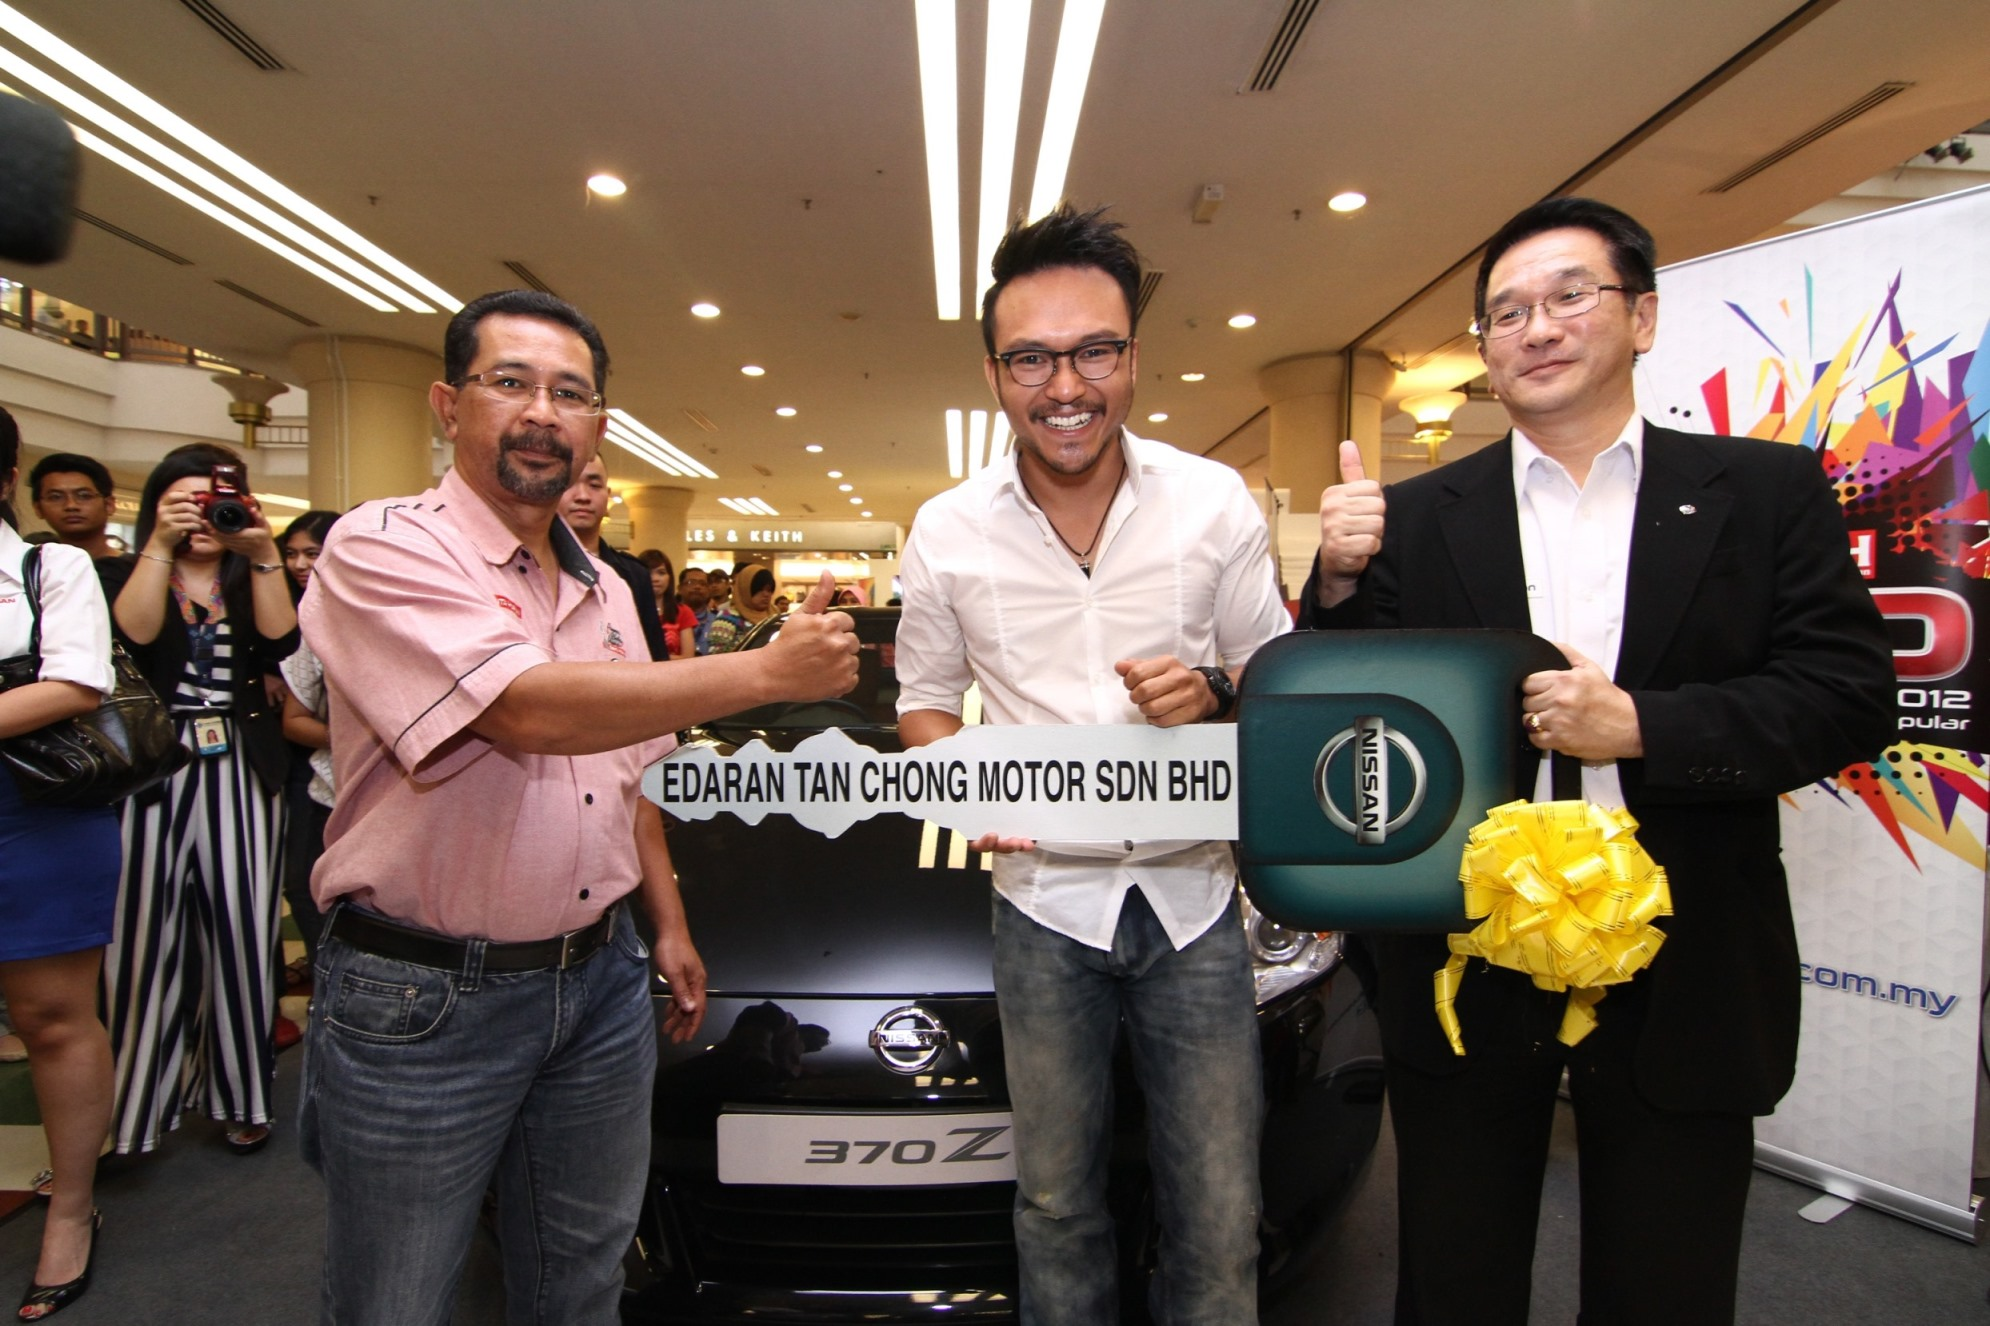 Sam, grand winner of ABPBH 2012 with his Nissan 370Z